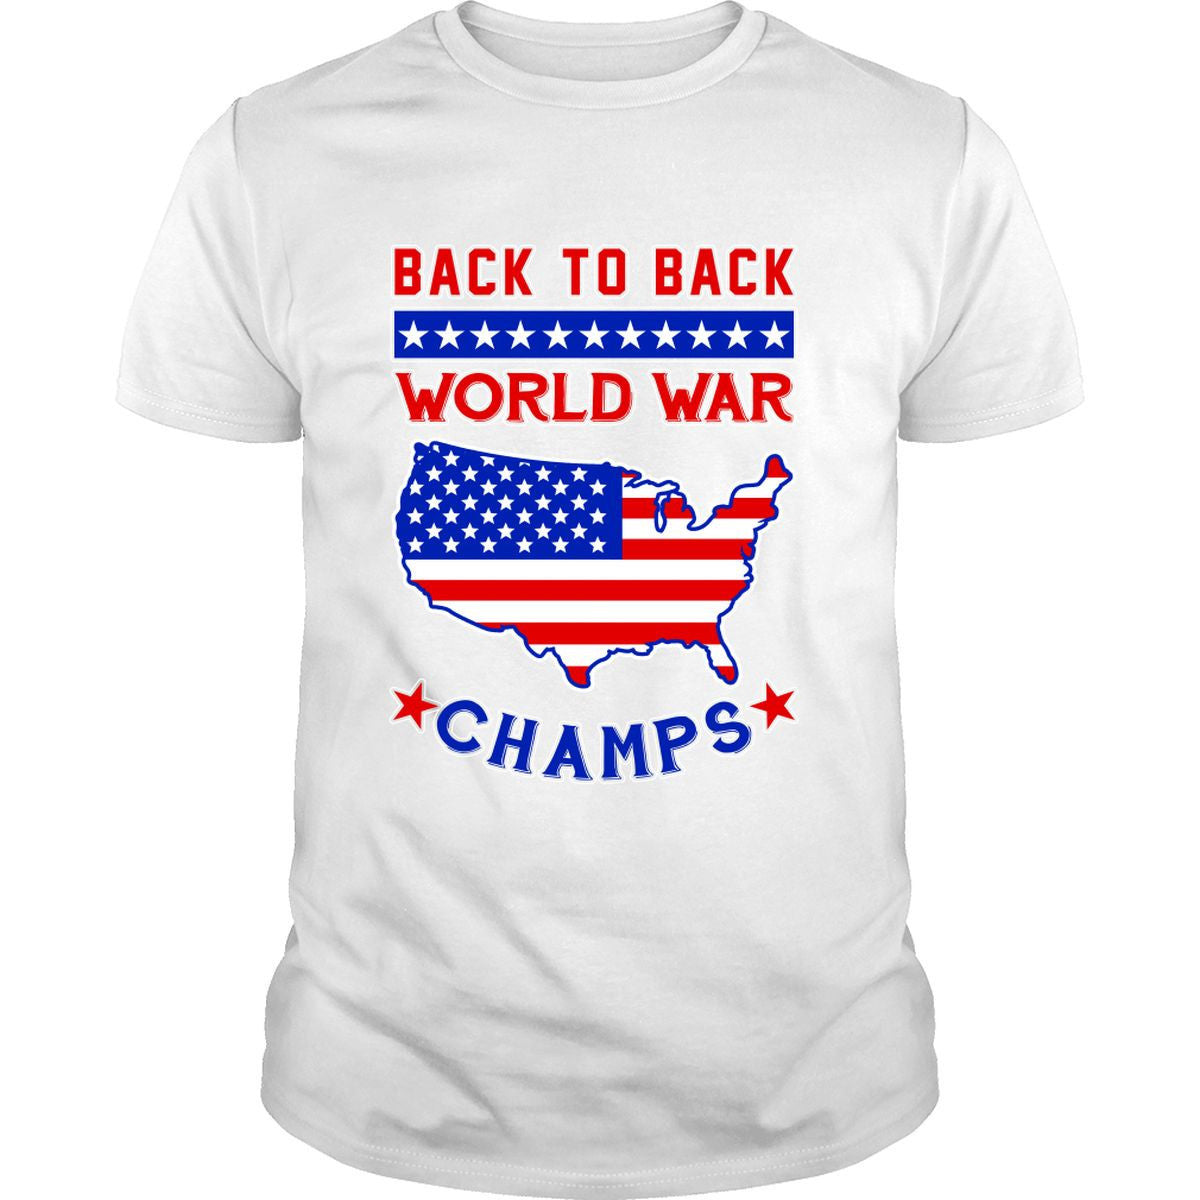 Back To Back World War Champs Shirt (White)